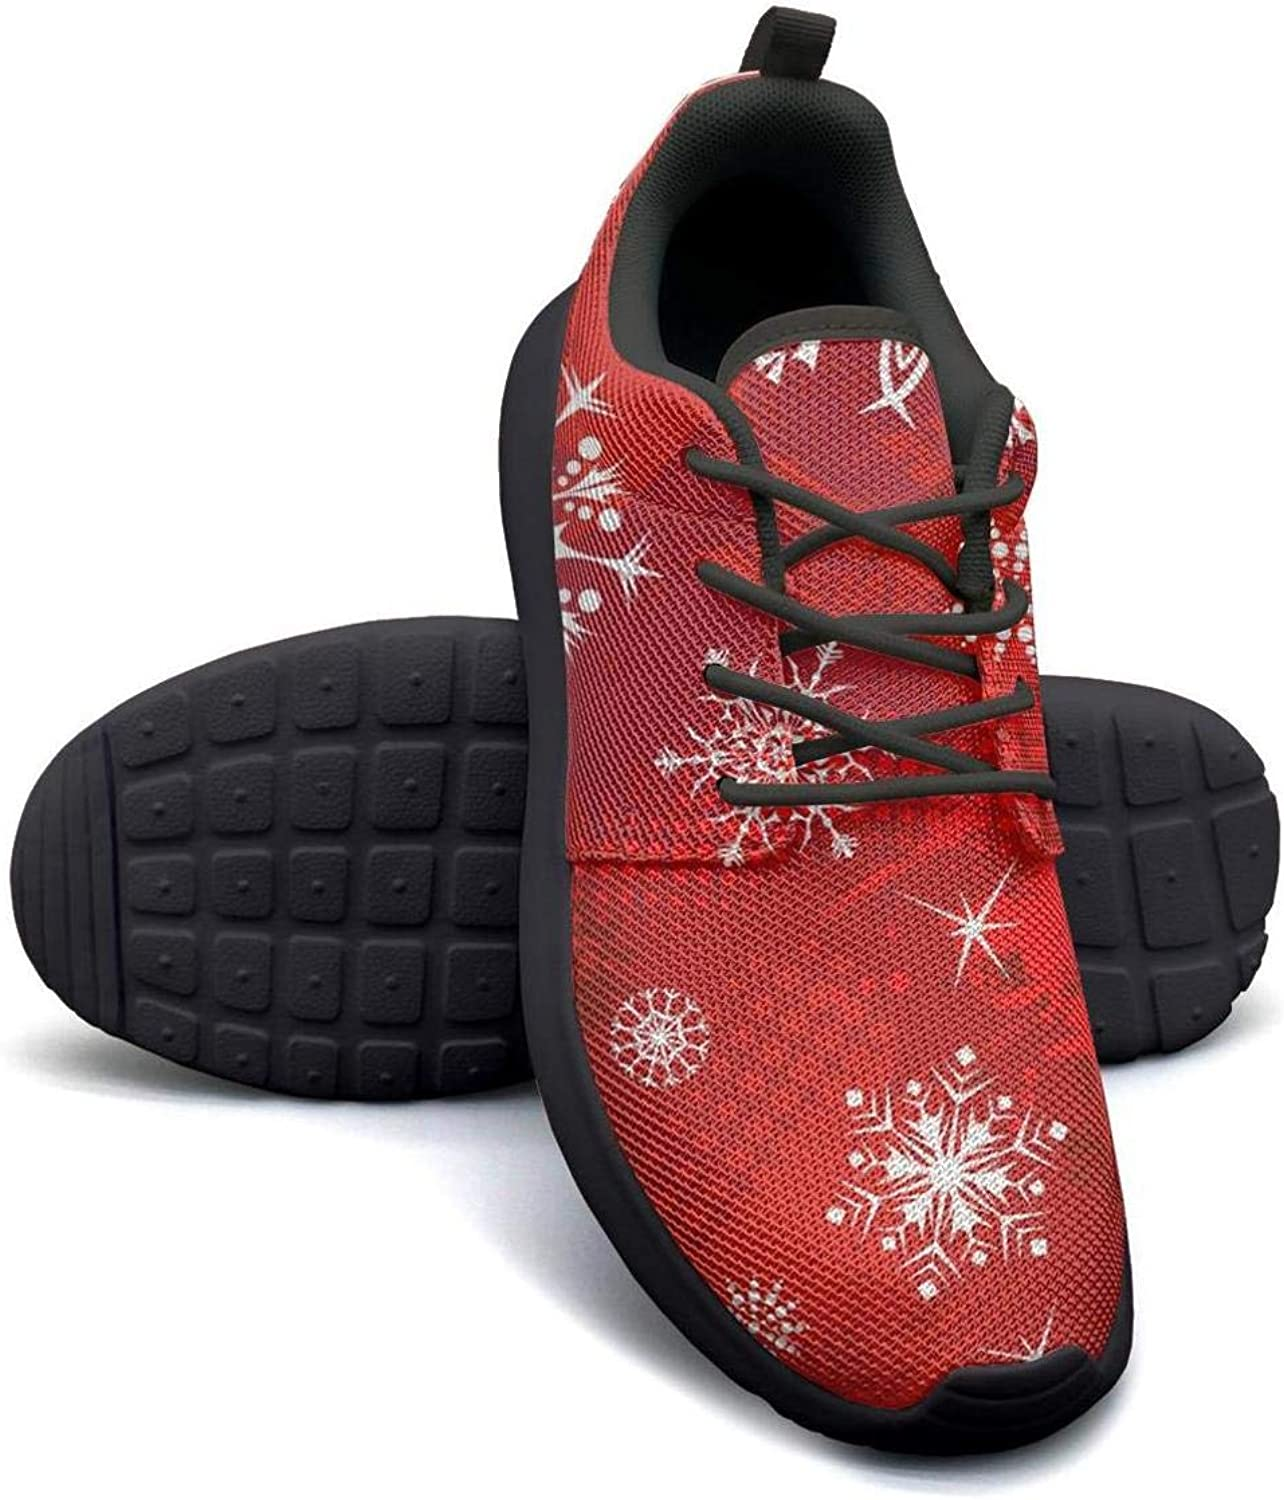 Gjsonmv Merry Christmas Snowflakes mesh Lightweight shoes for Women Comfortable Sports Athletic Sneakers shoes